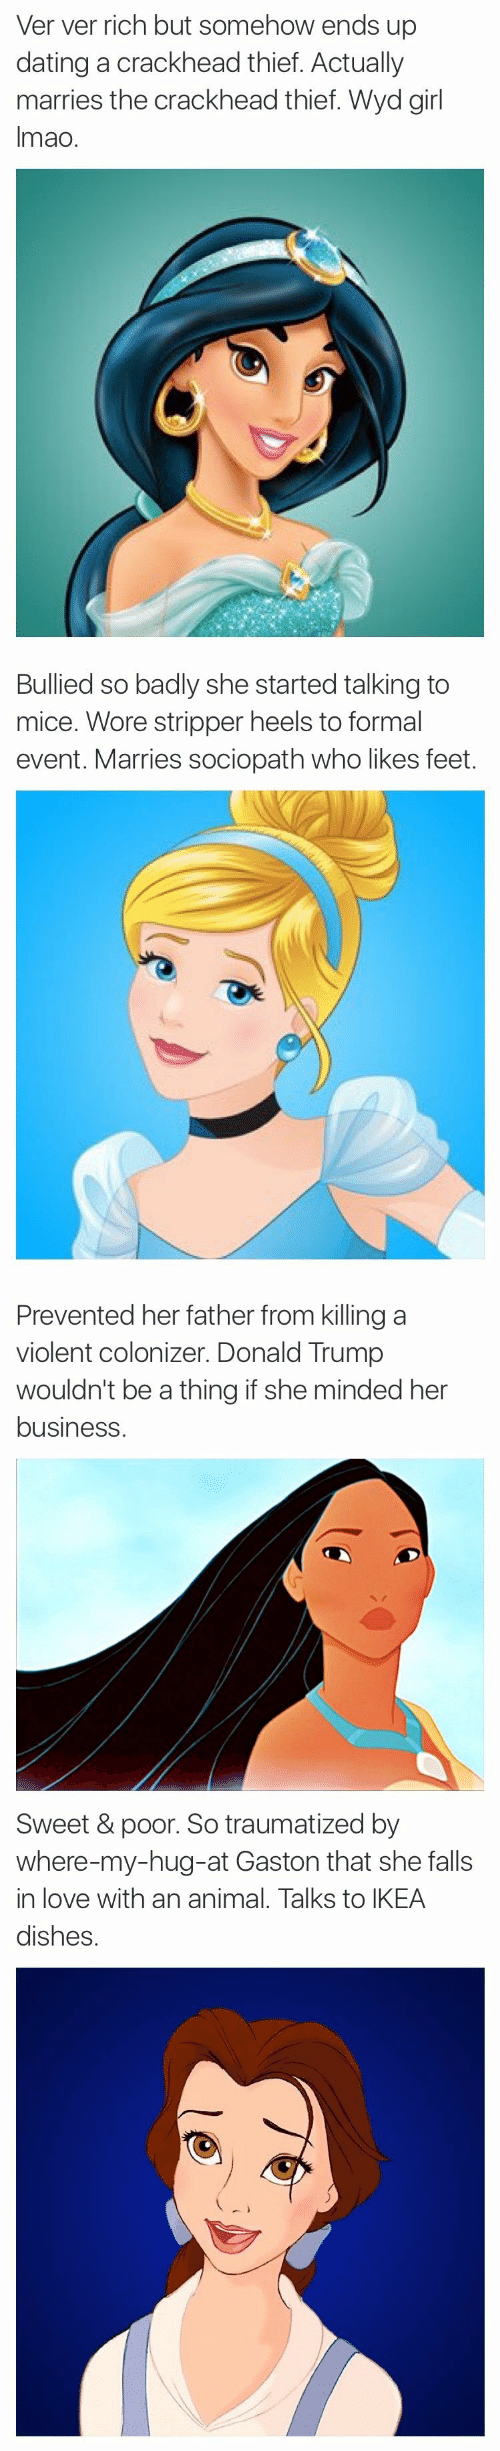 Crackhead, Dating, and Donald Trump: Ver ver rich but somehow ends up  dating a crackhead thief. Actually  marries the crackhead thief. Wyd girl  Imao.   Bullied so badly she started talking to  mice. Wore stripper heels to formal  event. Marries sociopath who likes feet.   Prevented her father from killing a  violent colonizer. Donald Trump  wouldn't be a thing if she minded her  business   Sweet & poor. So traumatized by  where-my-hug-at Gaston that she falls  in love with an animal. Talks to IKEA  dishes.